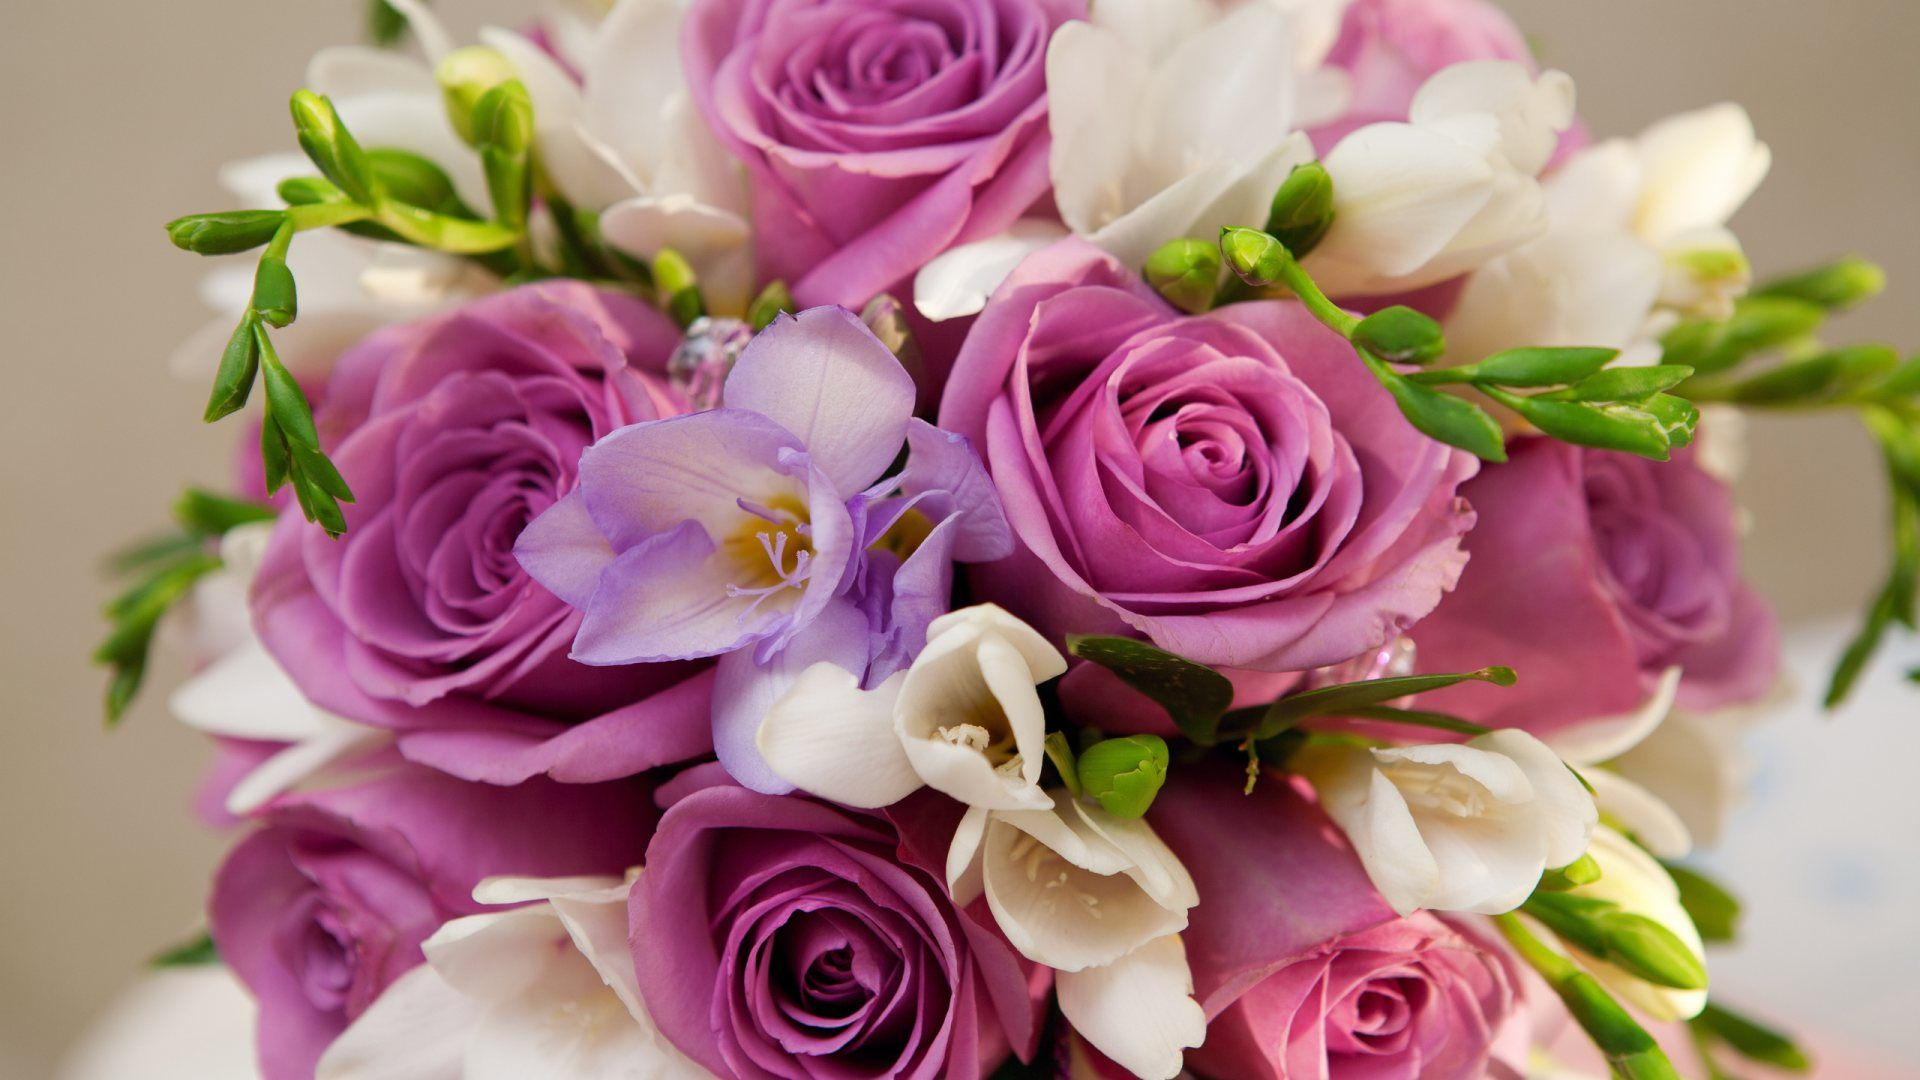 Yu beautiful flowers for you 221087g 19201080 awesome color yu beautiful flowers for you 221087g 19201080 izmirmasajfo